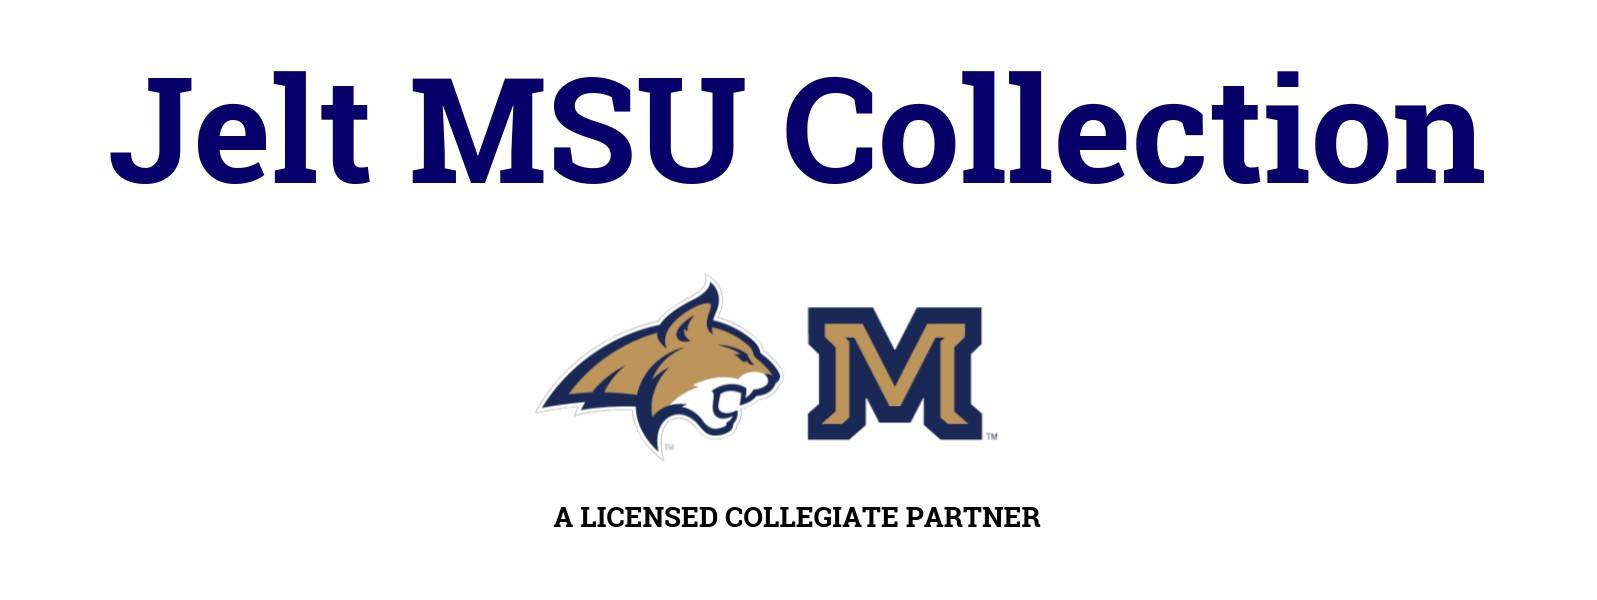 Jelt MSU Collection with logos